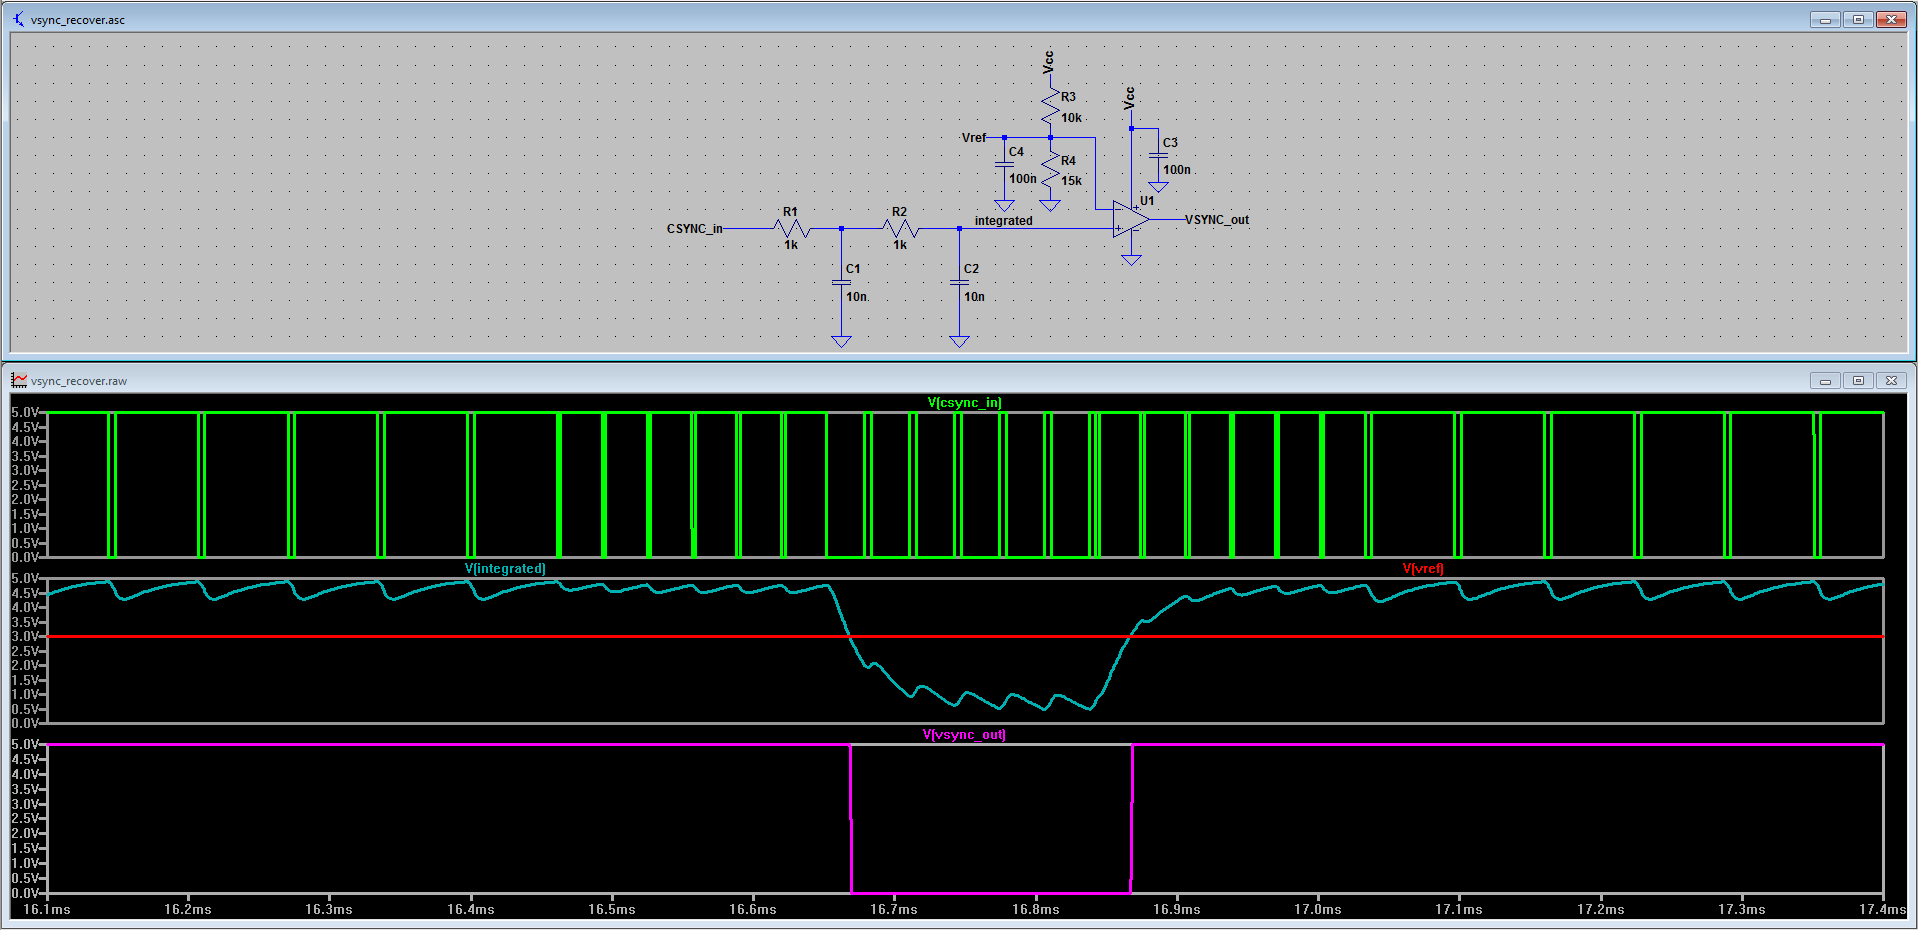 Simple RC integrator + analog comparator VSYNC recovery circuit.